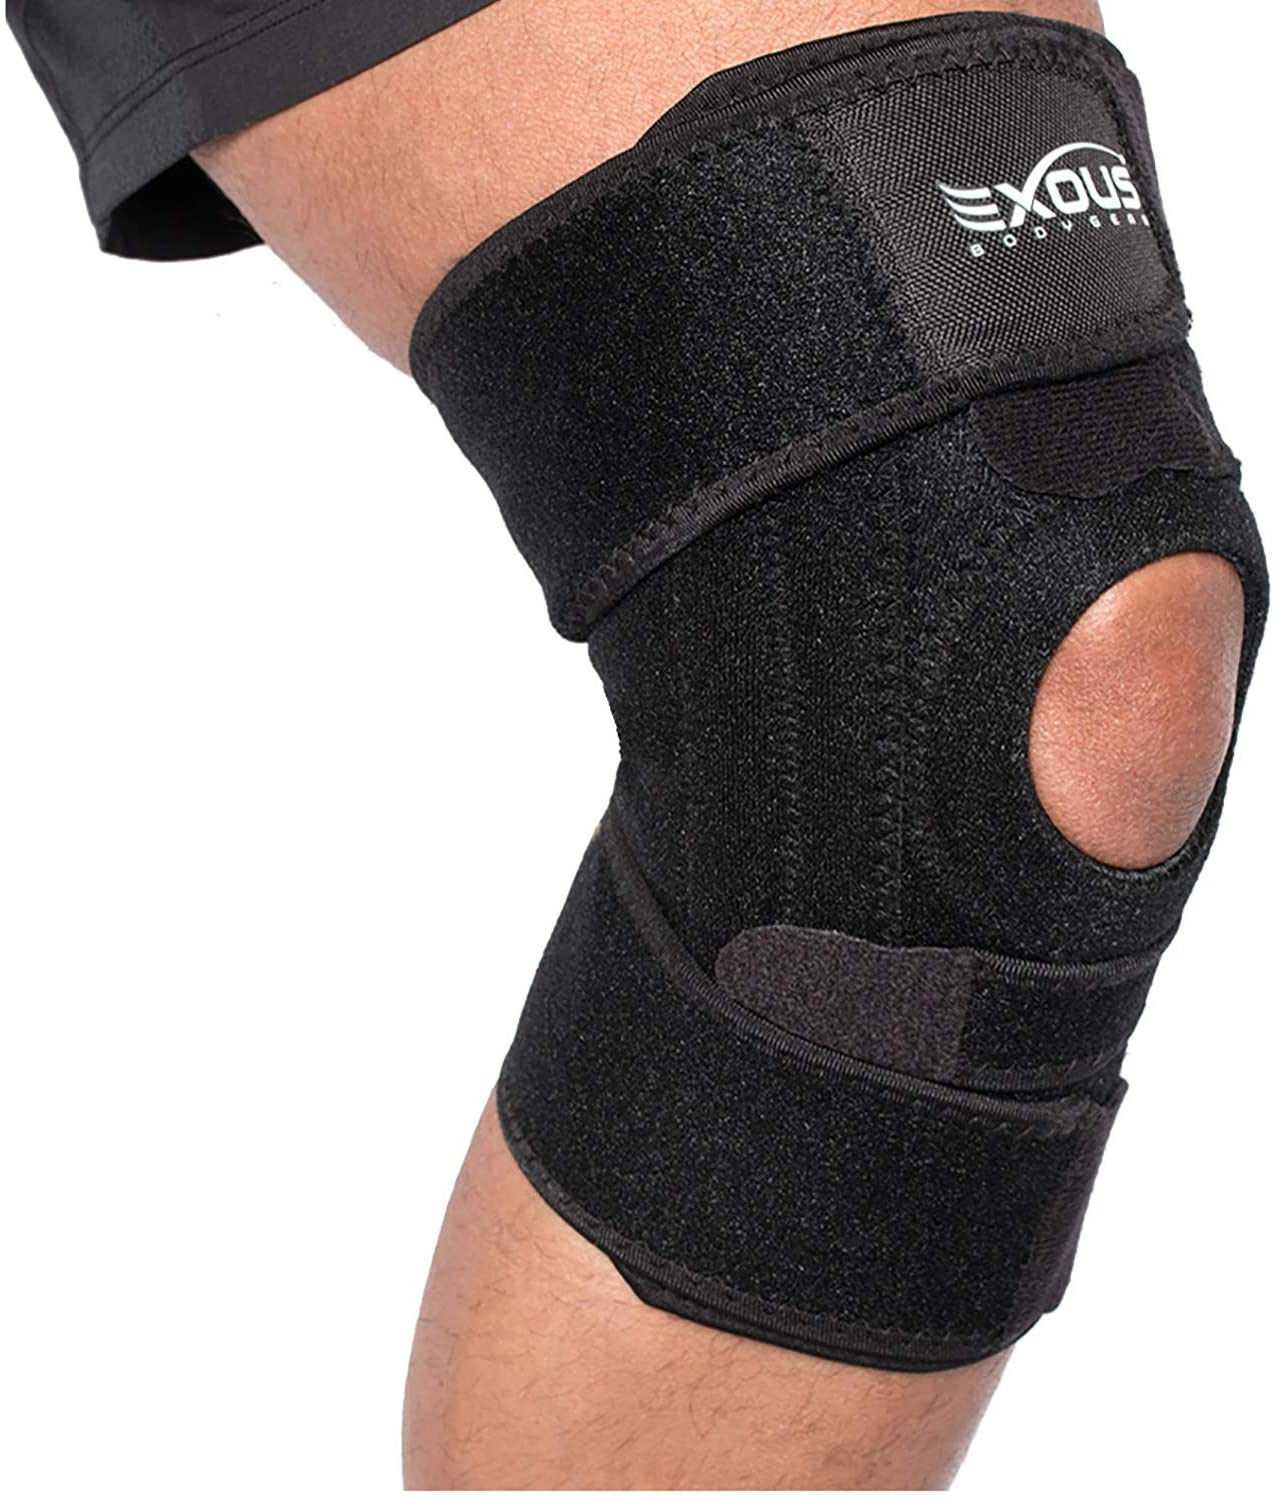 EXOUS Knee Brace review